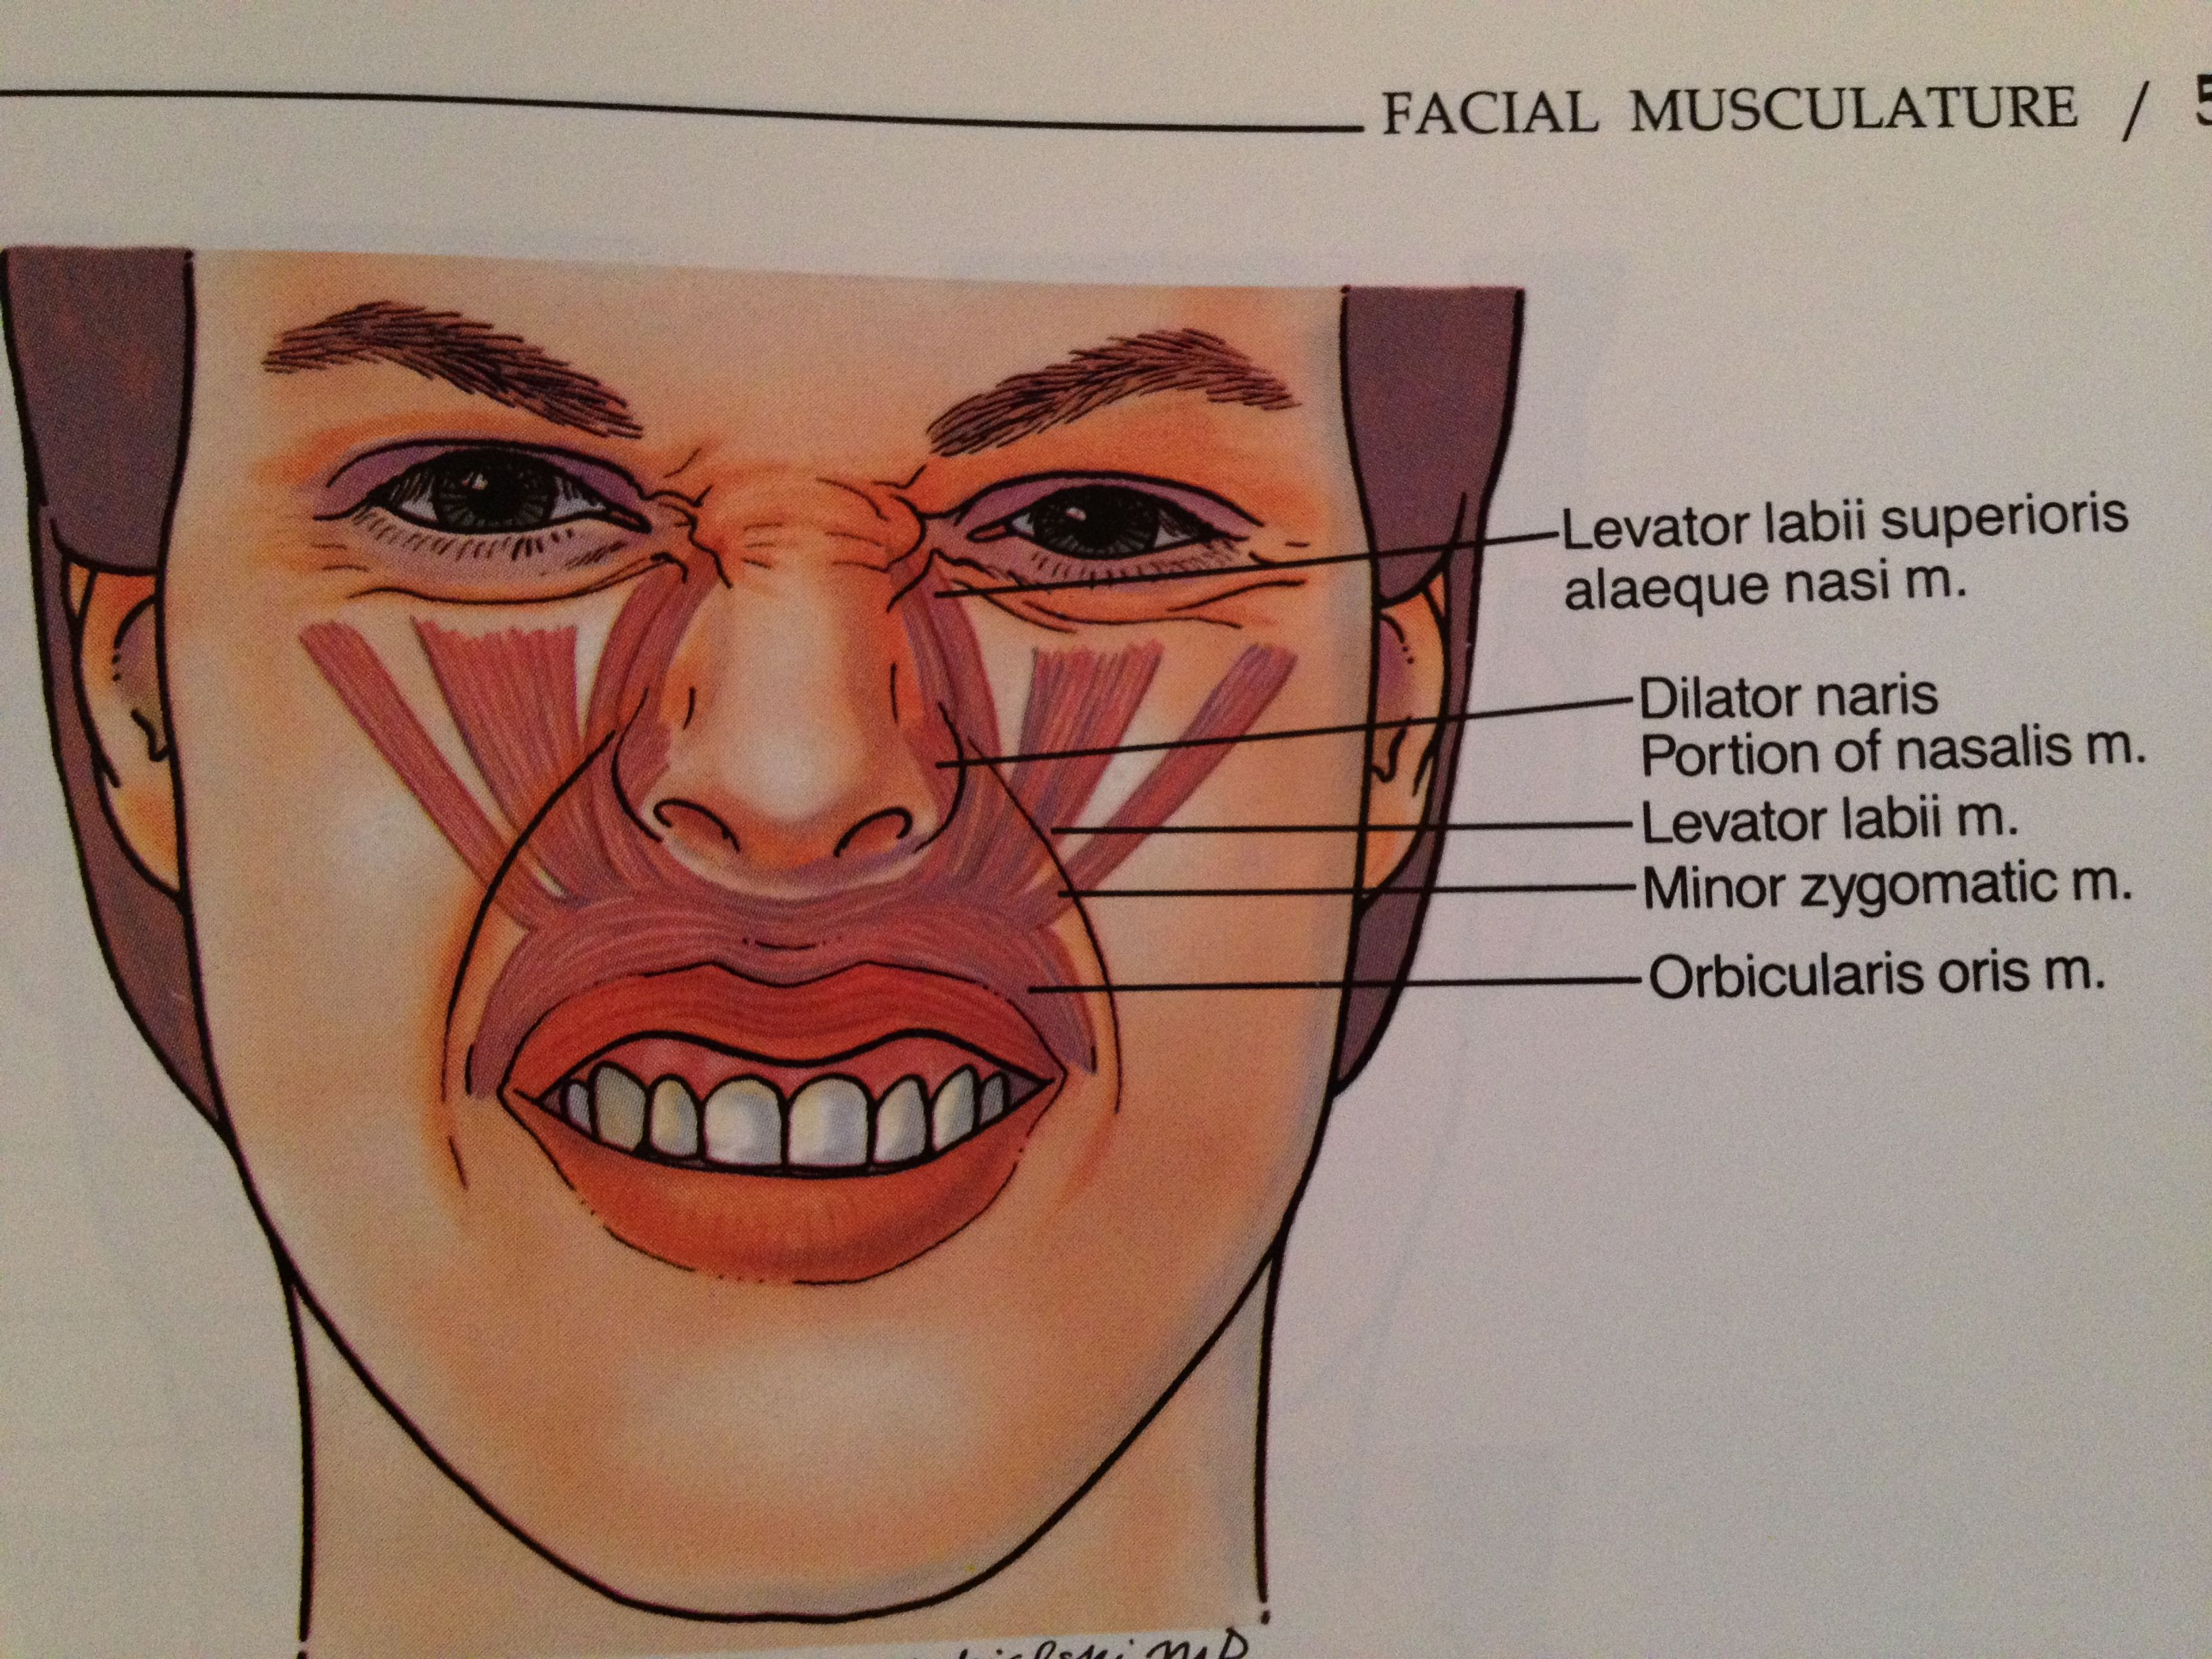 Upper lip and nasal musculature | Facial Anatomy ...